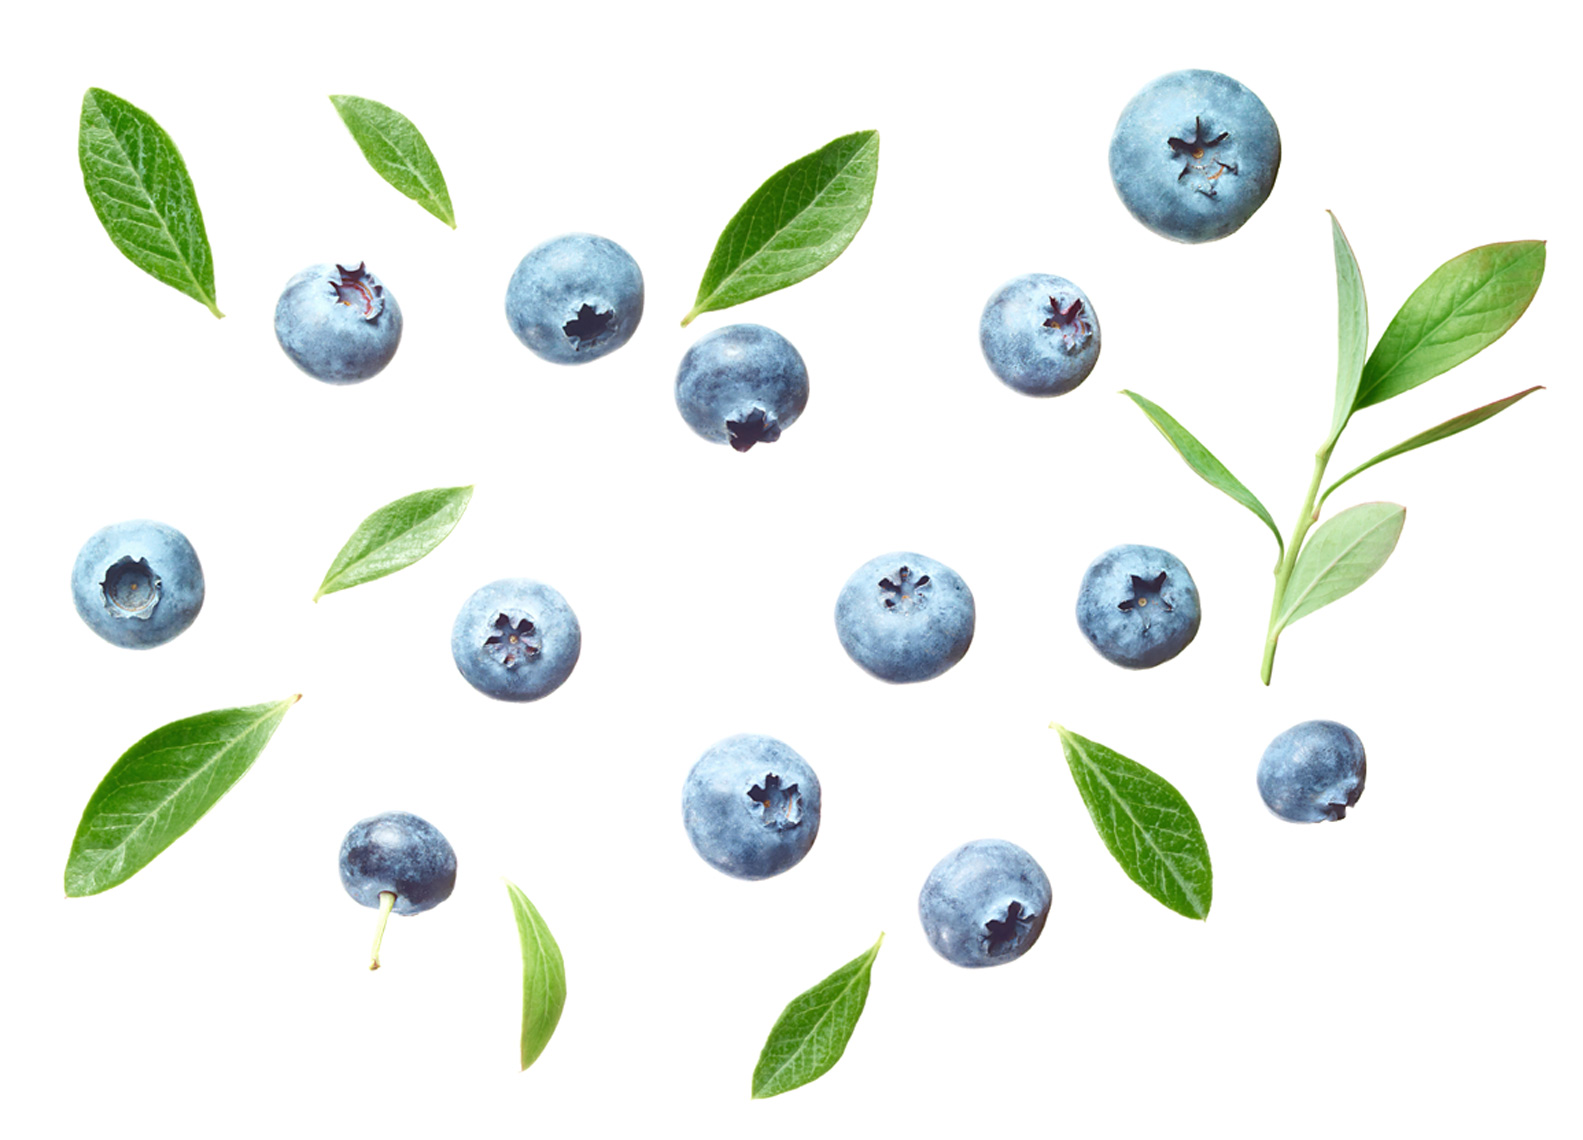 Blueberry_2012_07-DUP.jpg